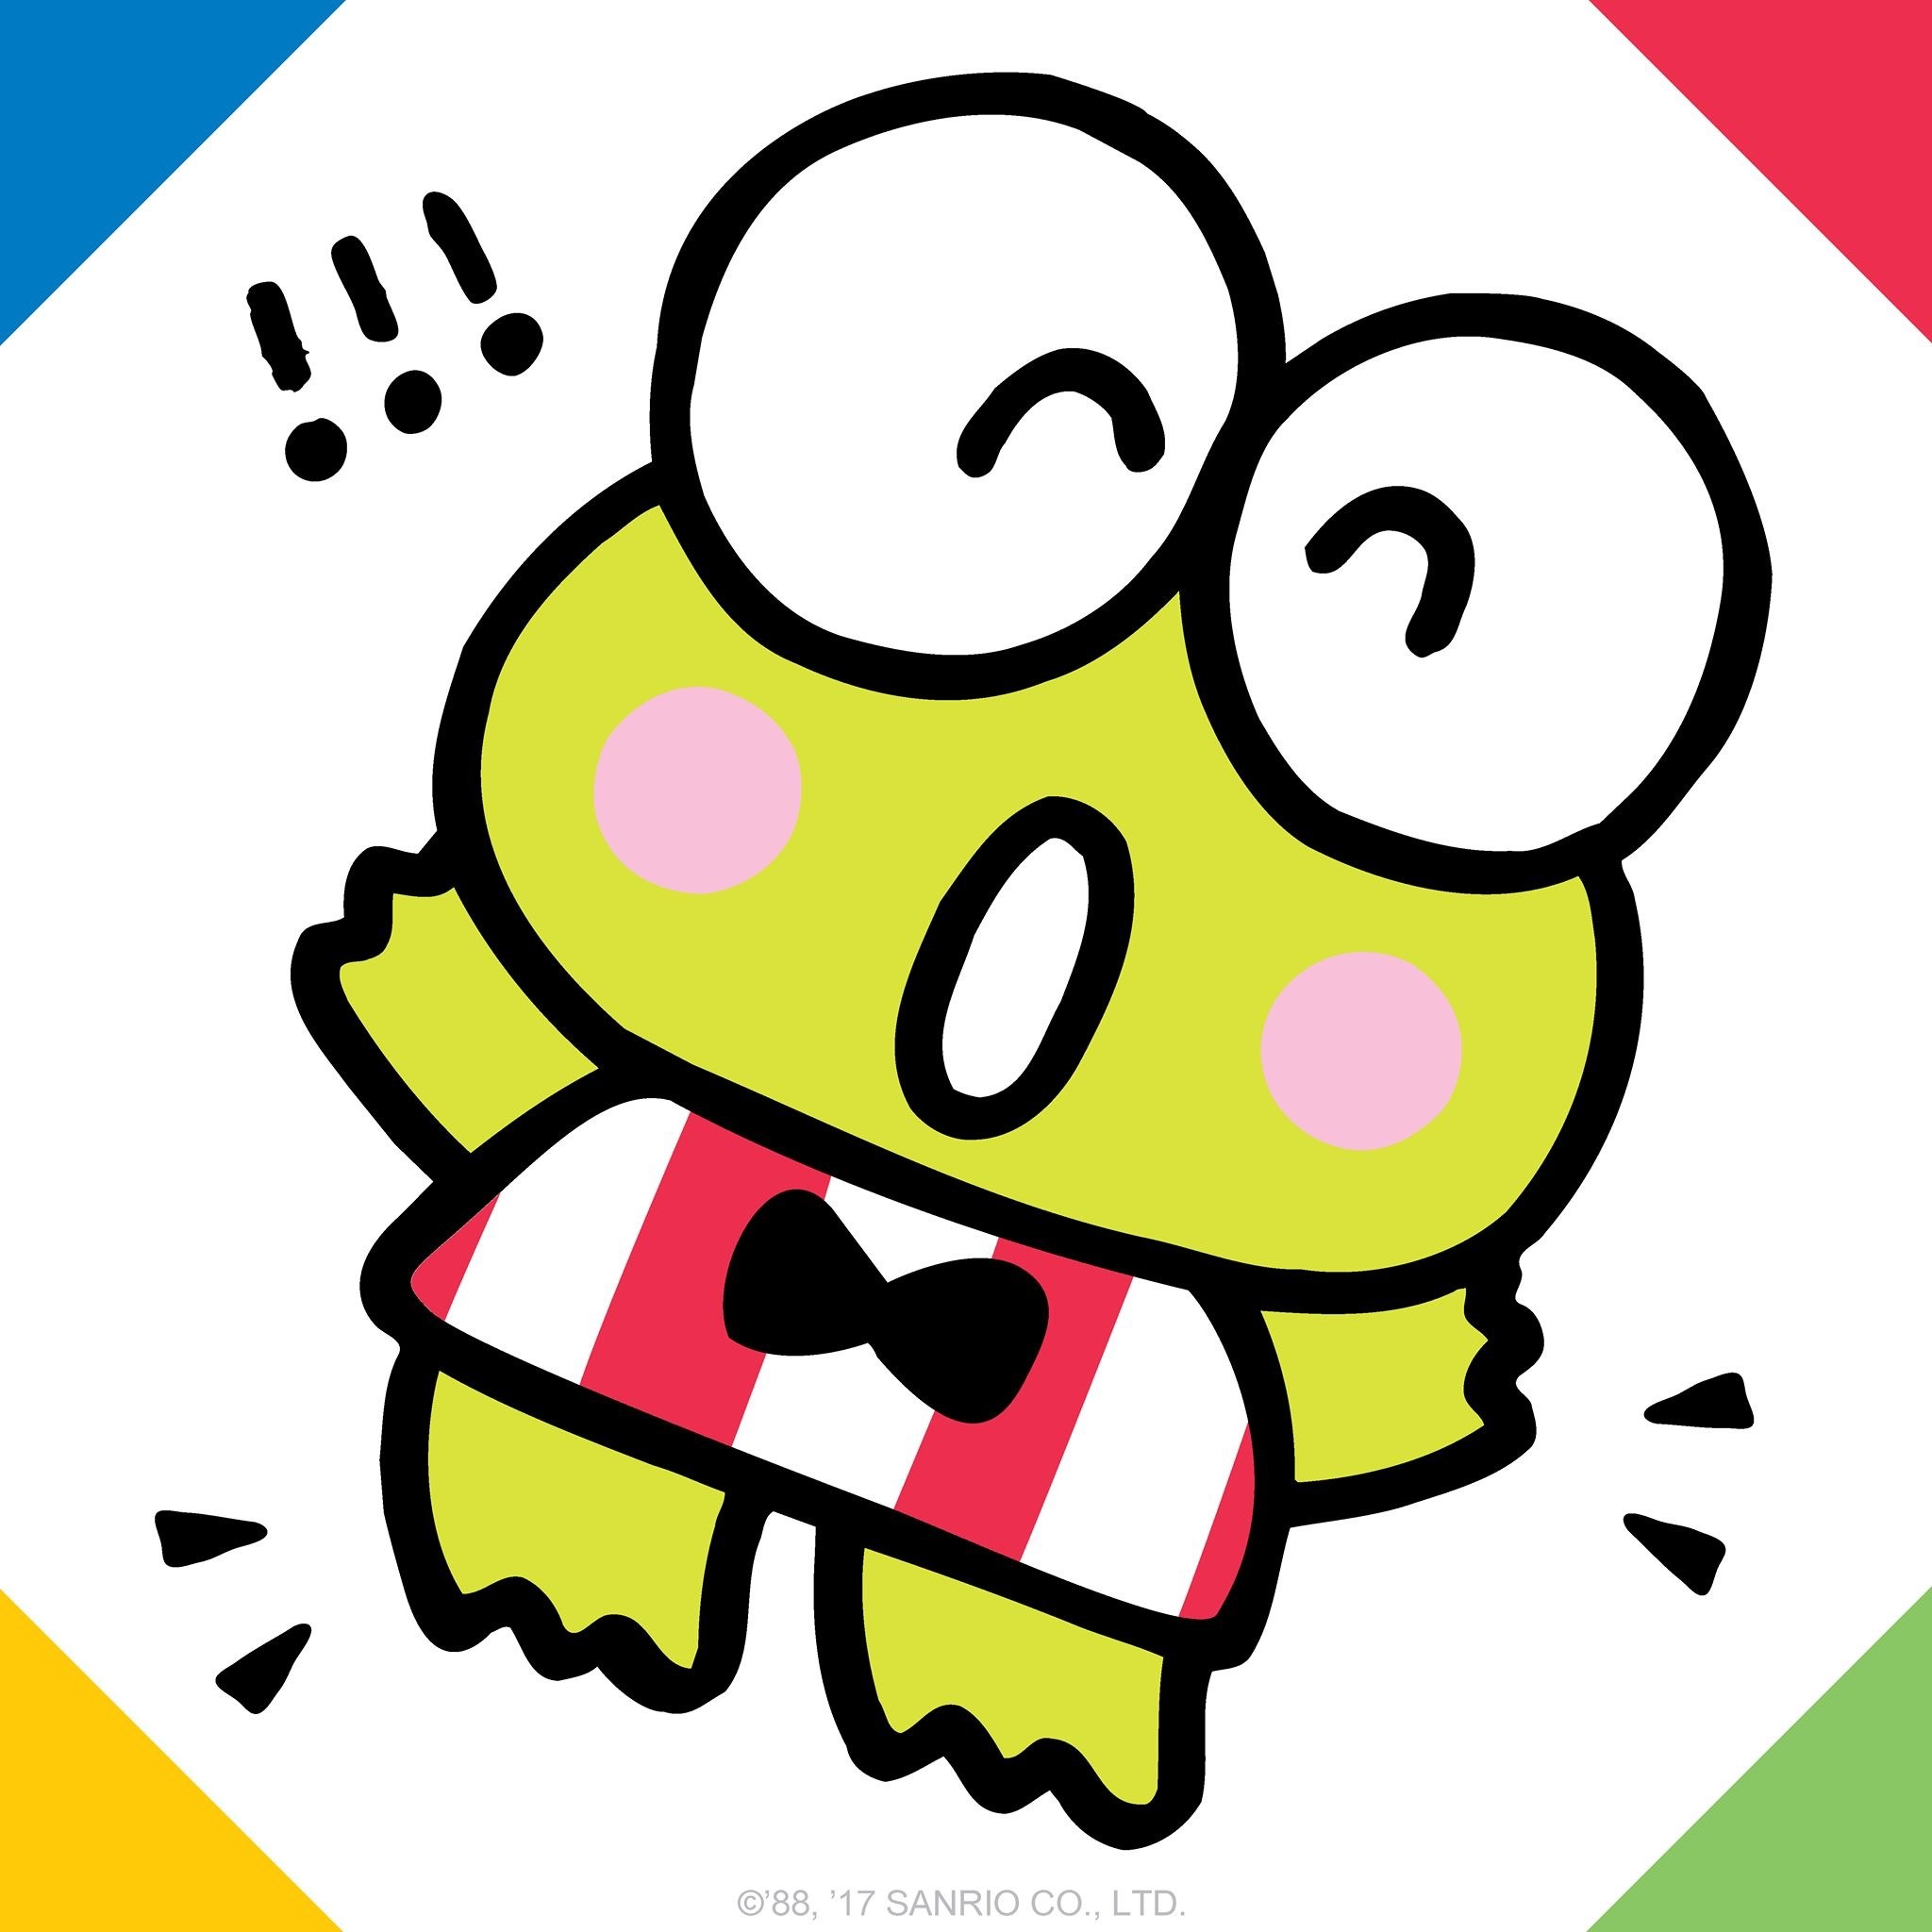 2048x2048 Keroppi is leaping high for Frog Jumping Day!